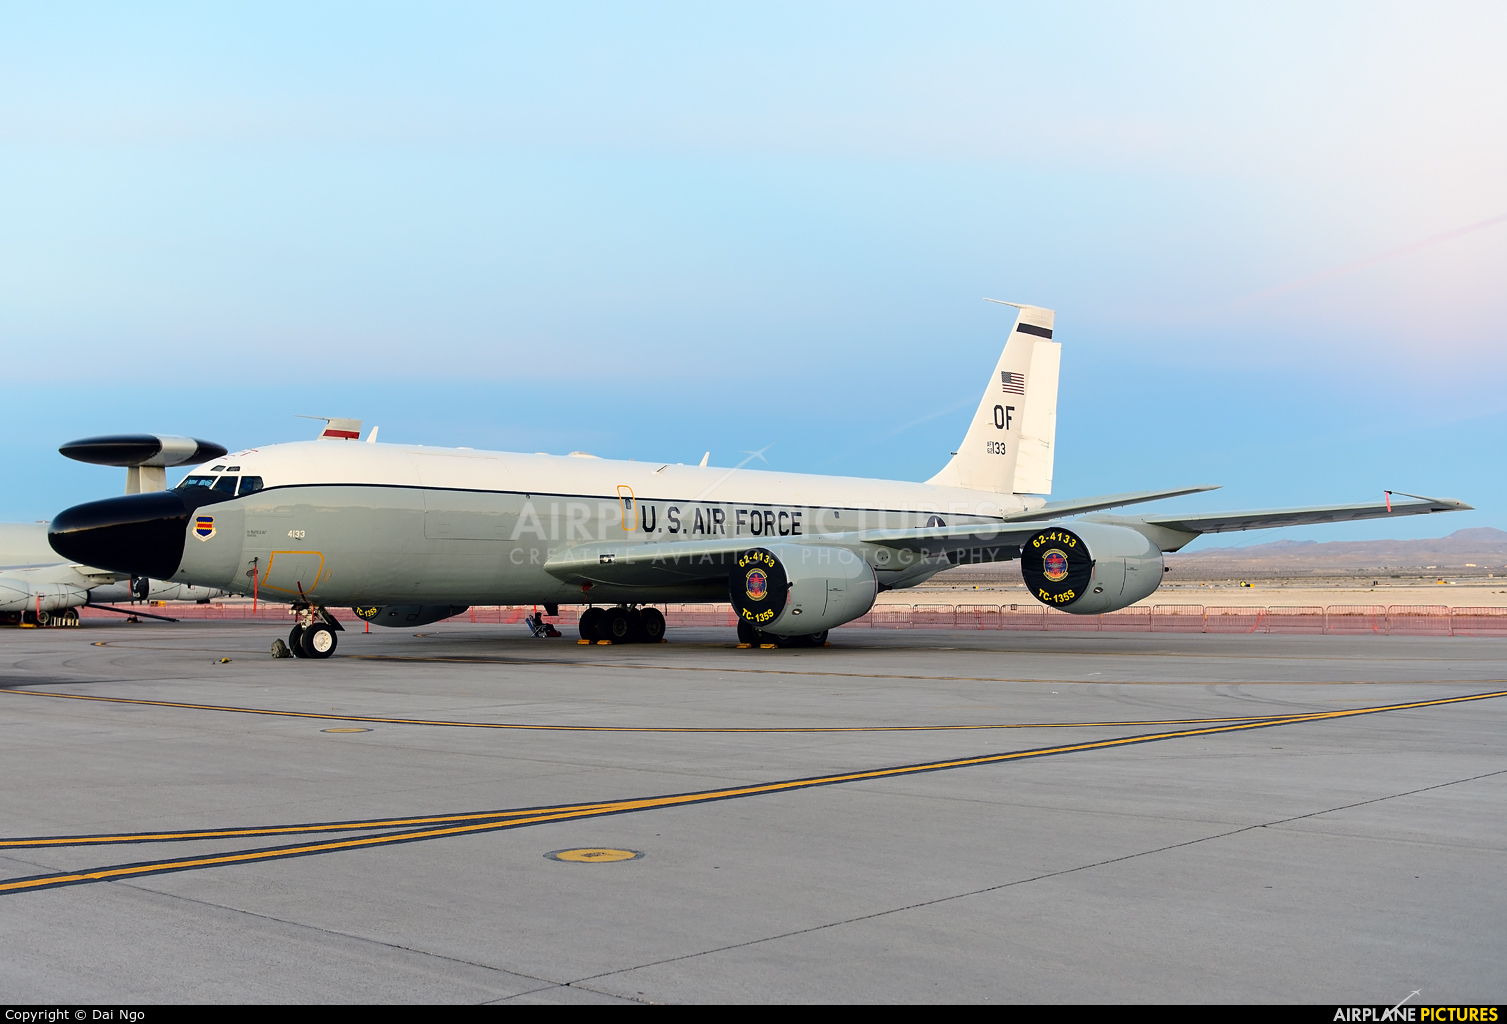 USA - Air Force 62-4133 aircraft at Nellis AFB